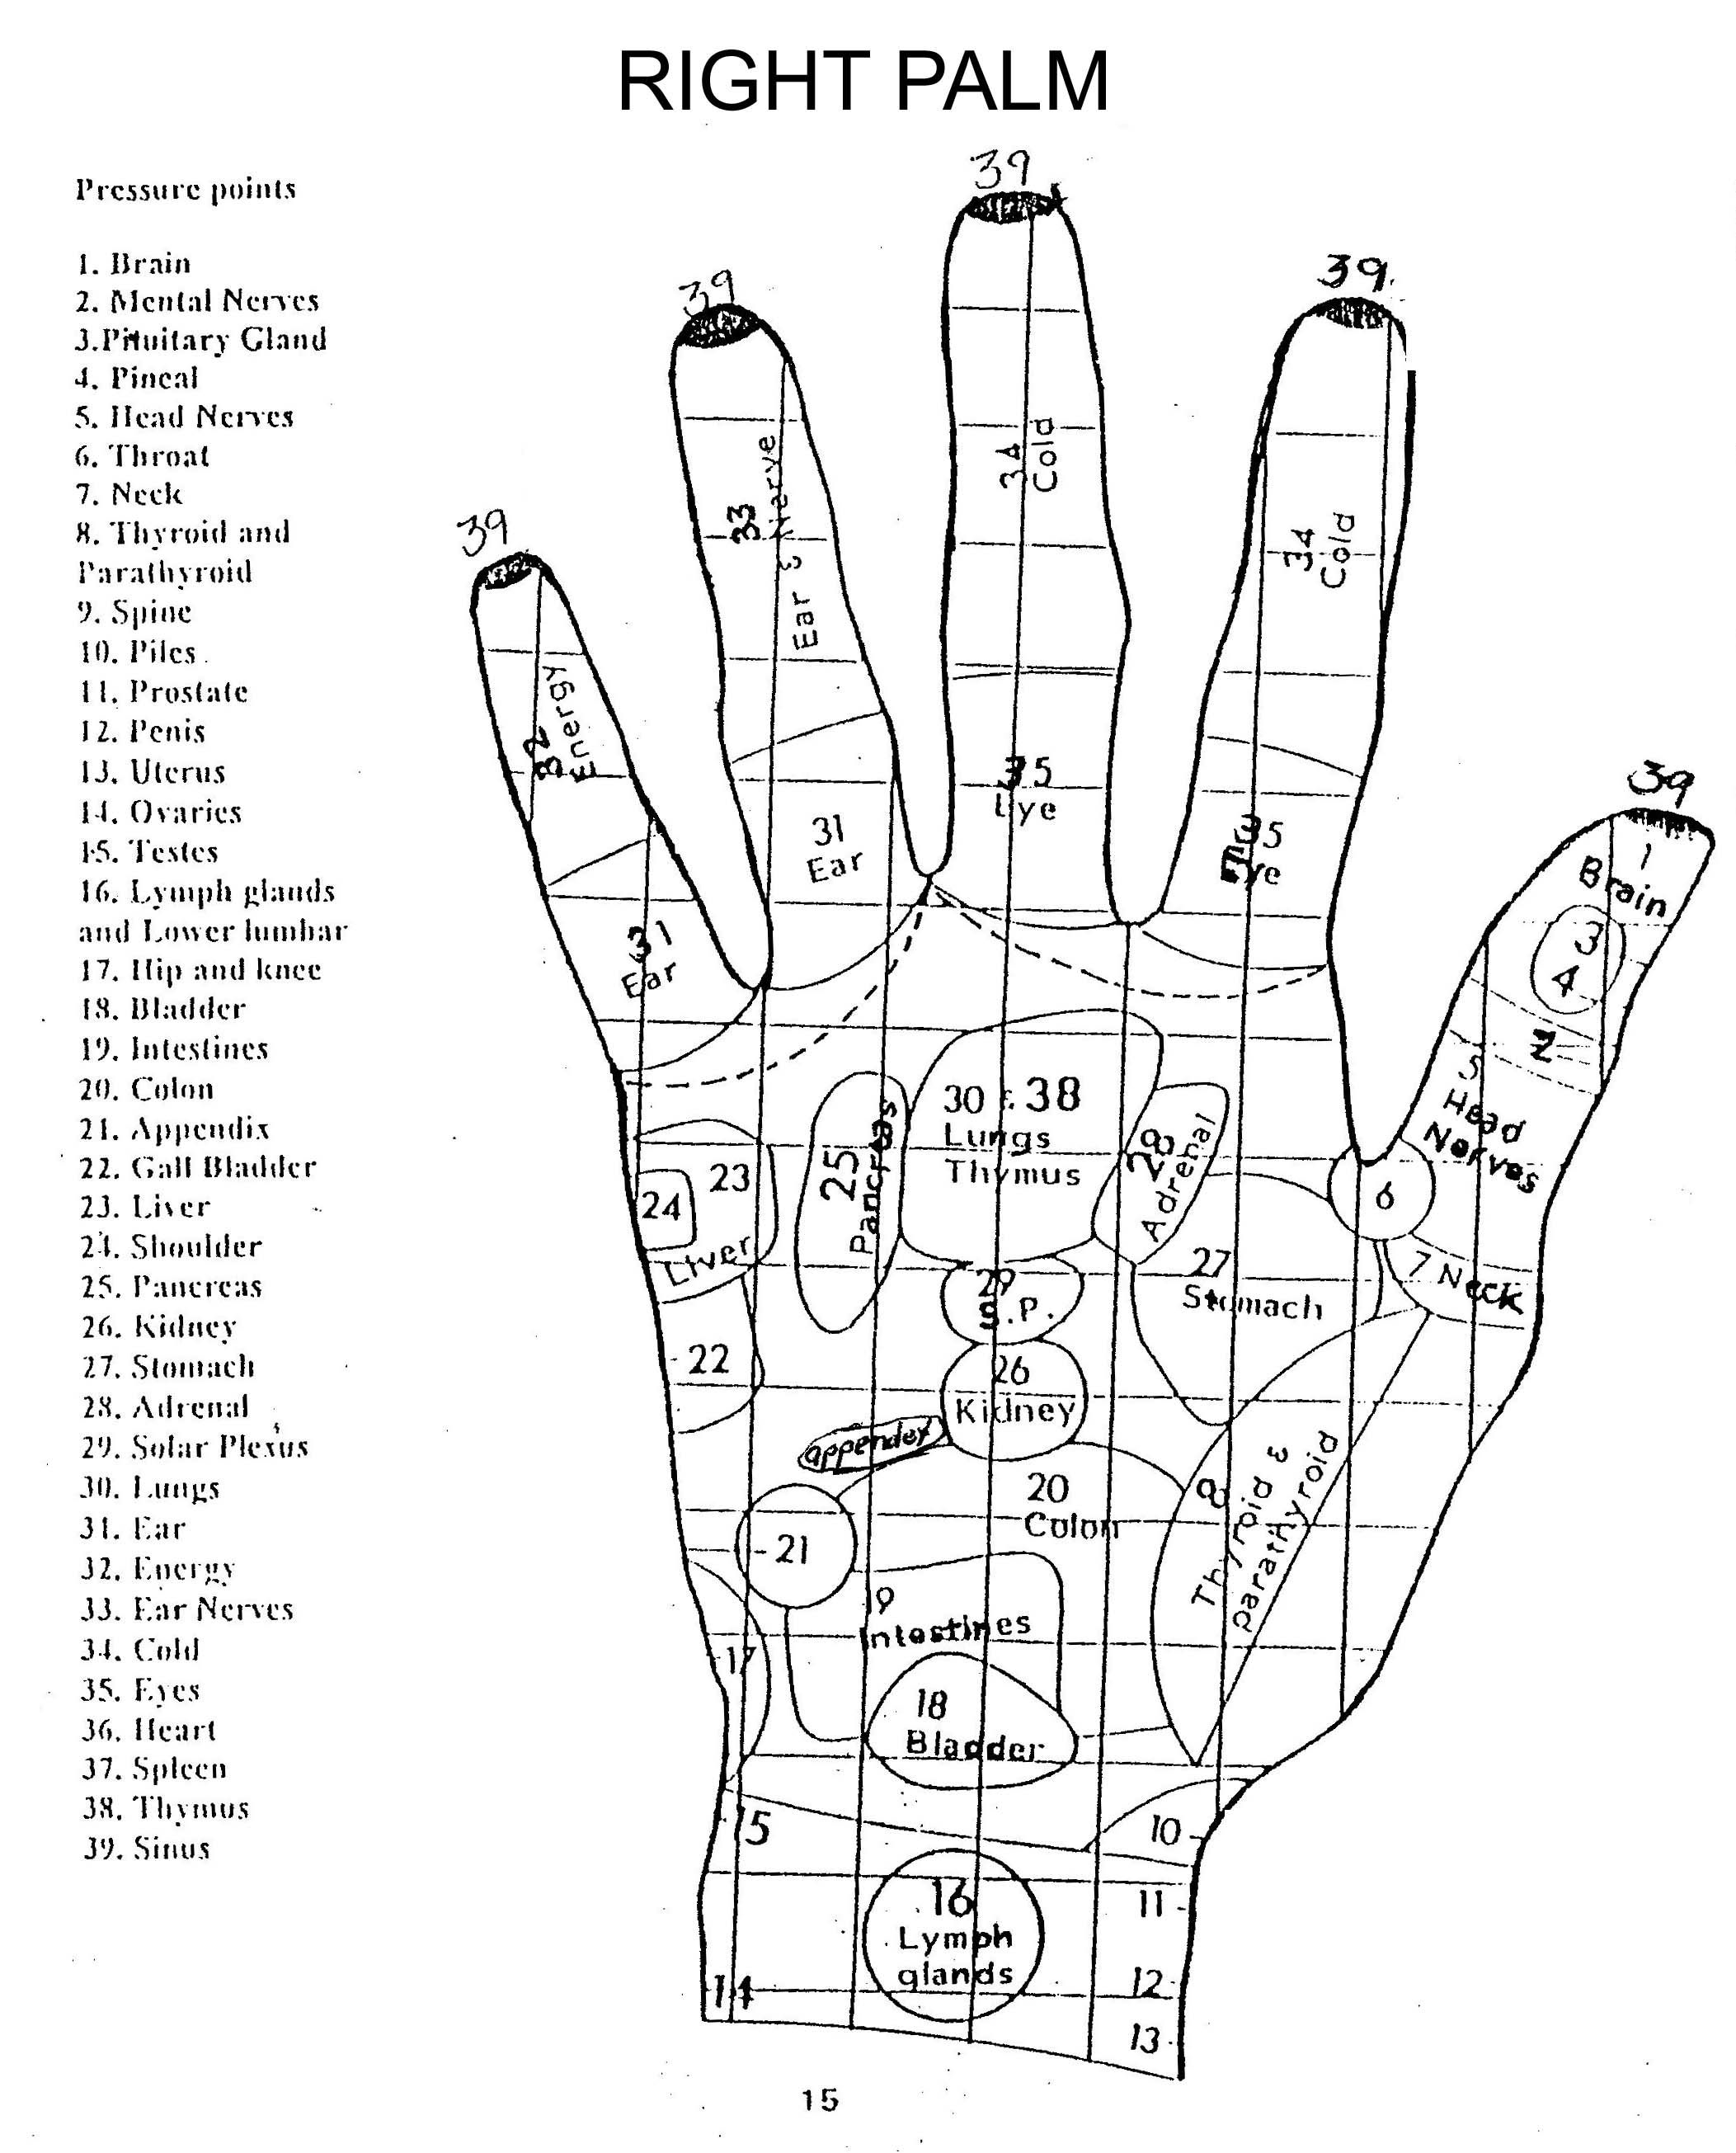 Left Hand Pressure Points